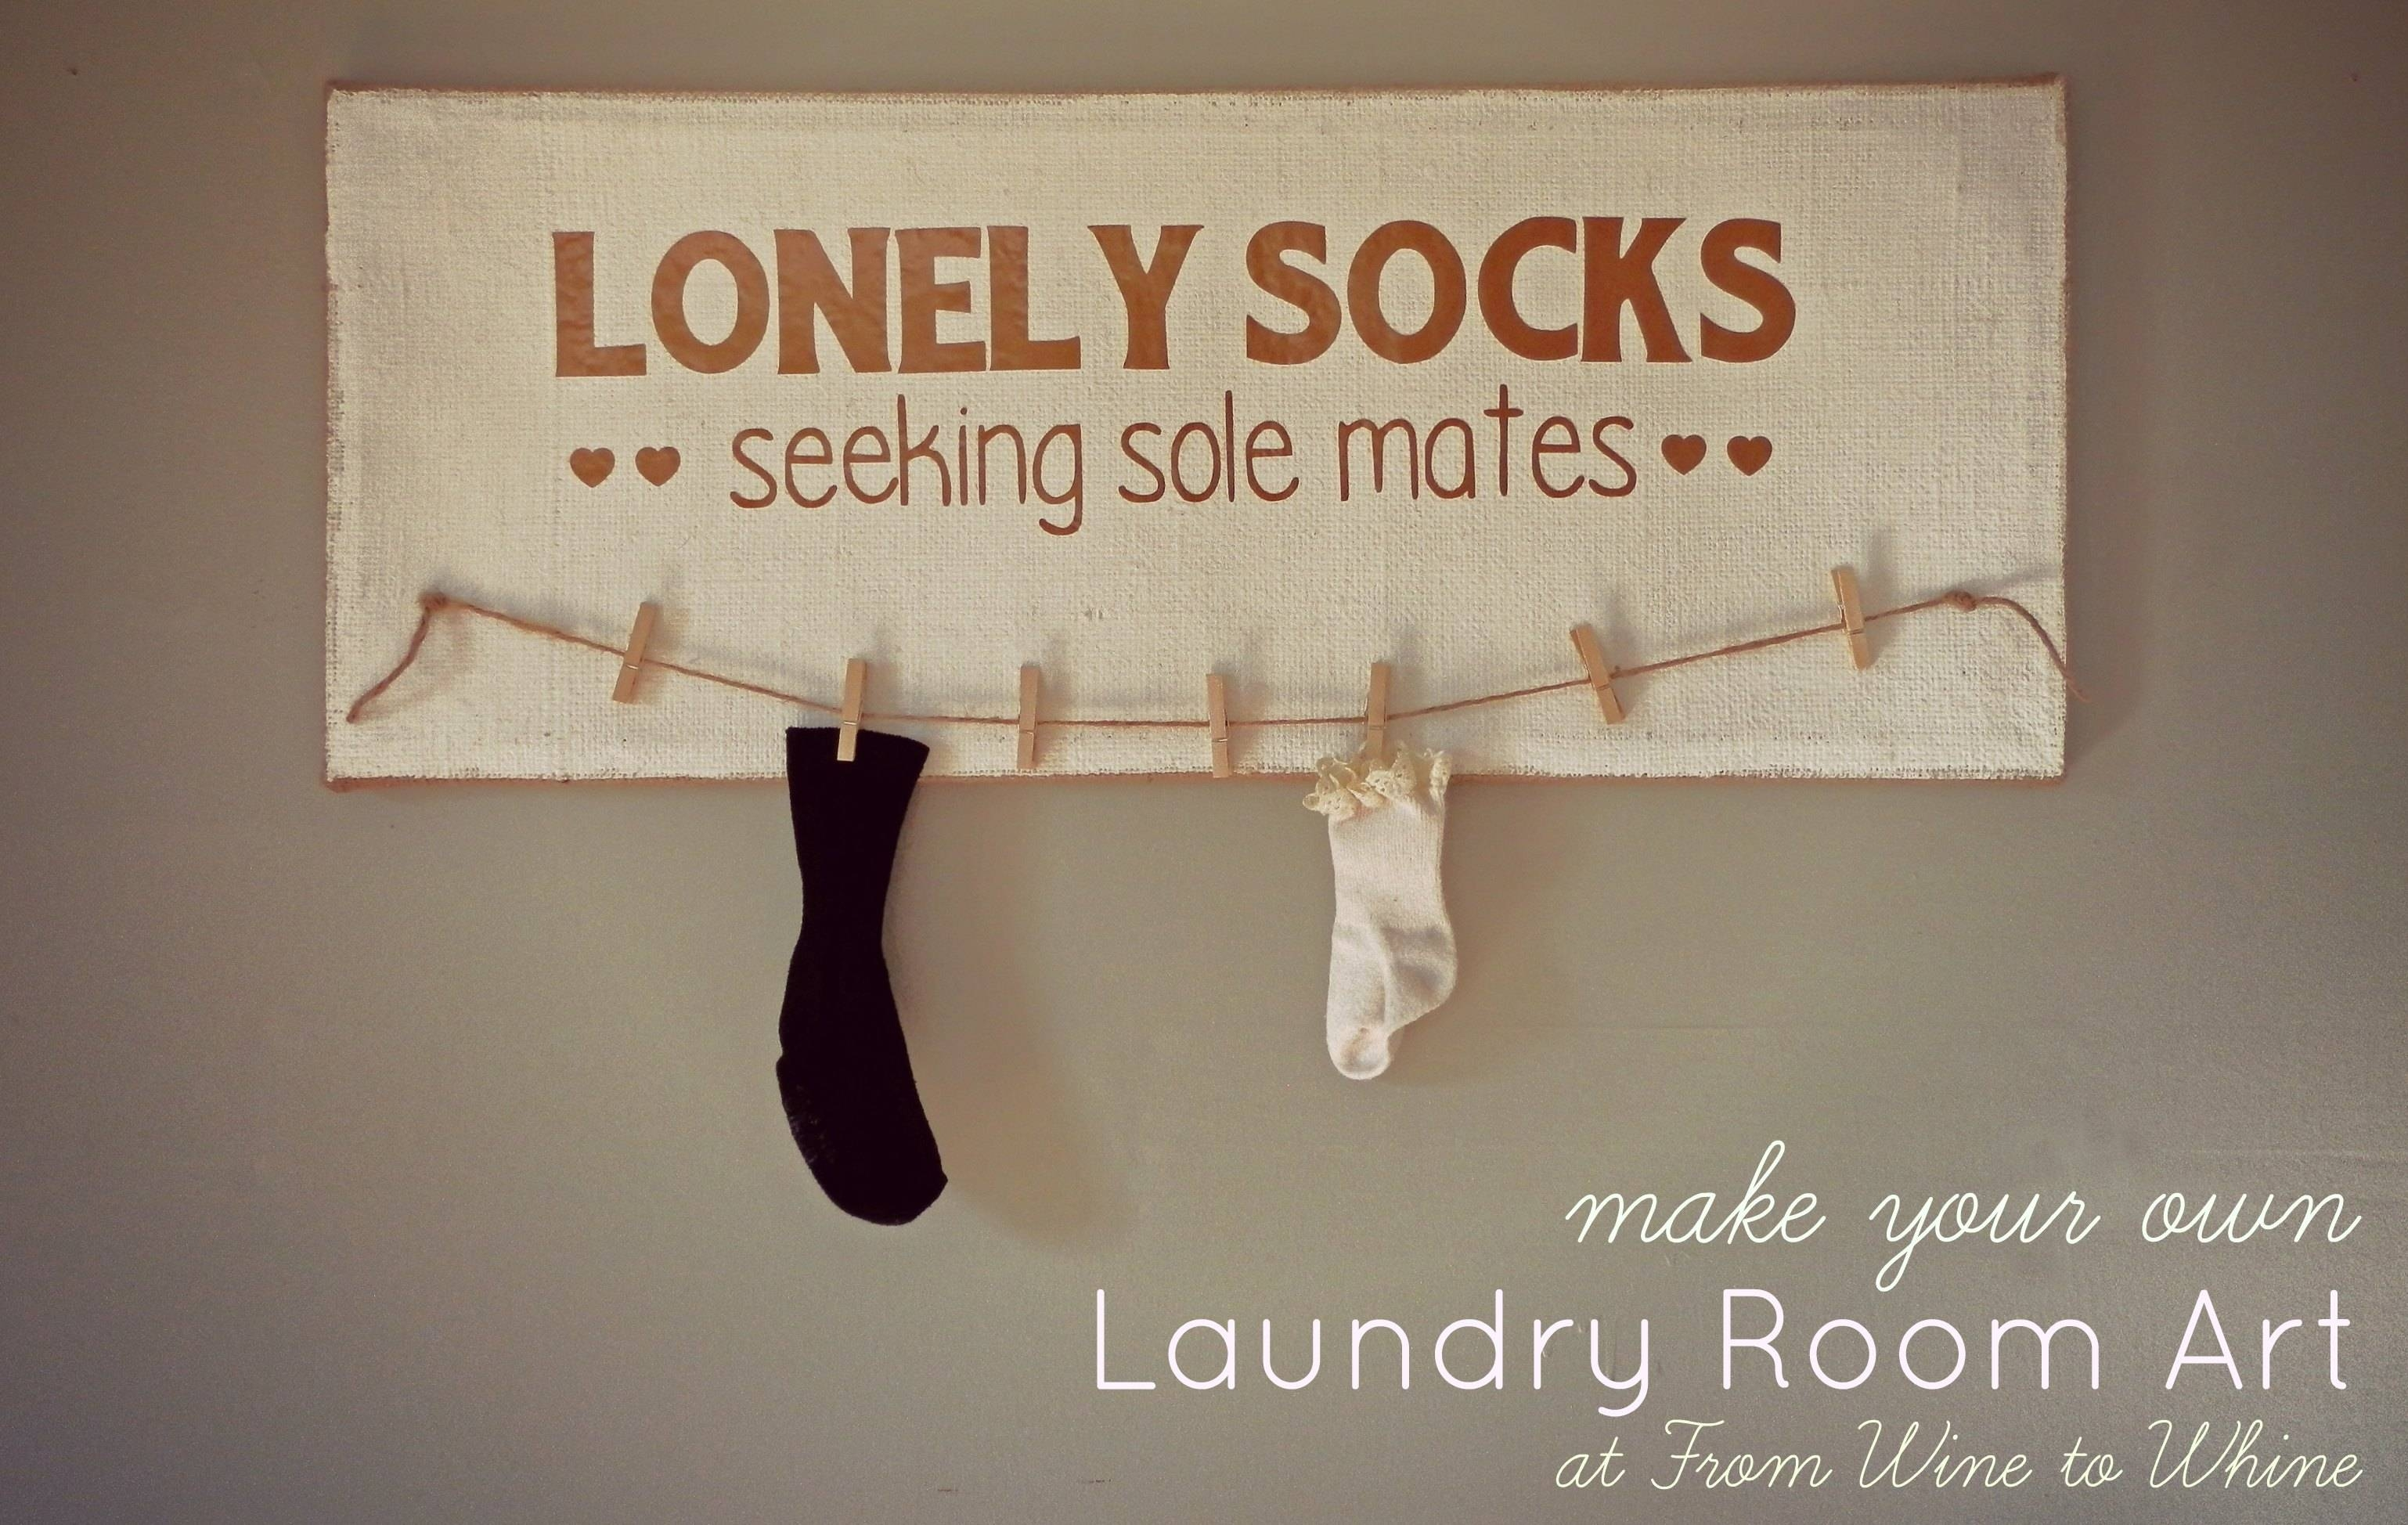 Wall Art For Laundry Room – Creeksideyarns With Regard To Most Current Laundry Room Wall Art Decors (View 25 of 25)